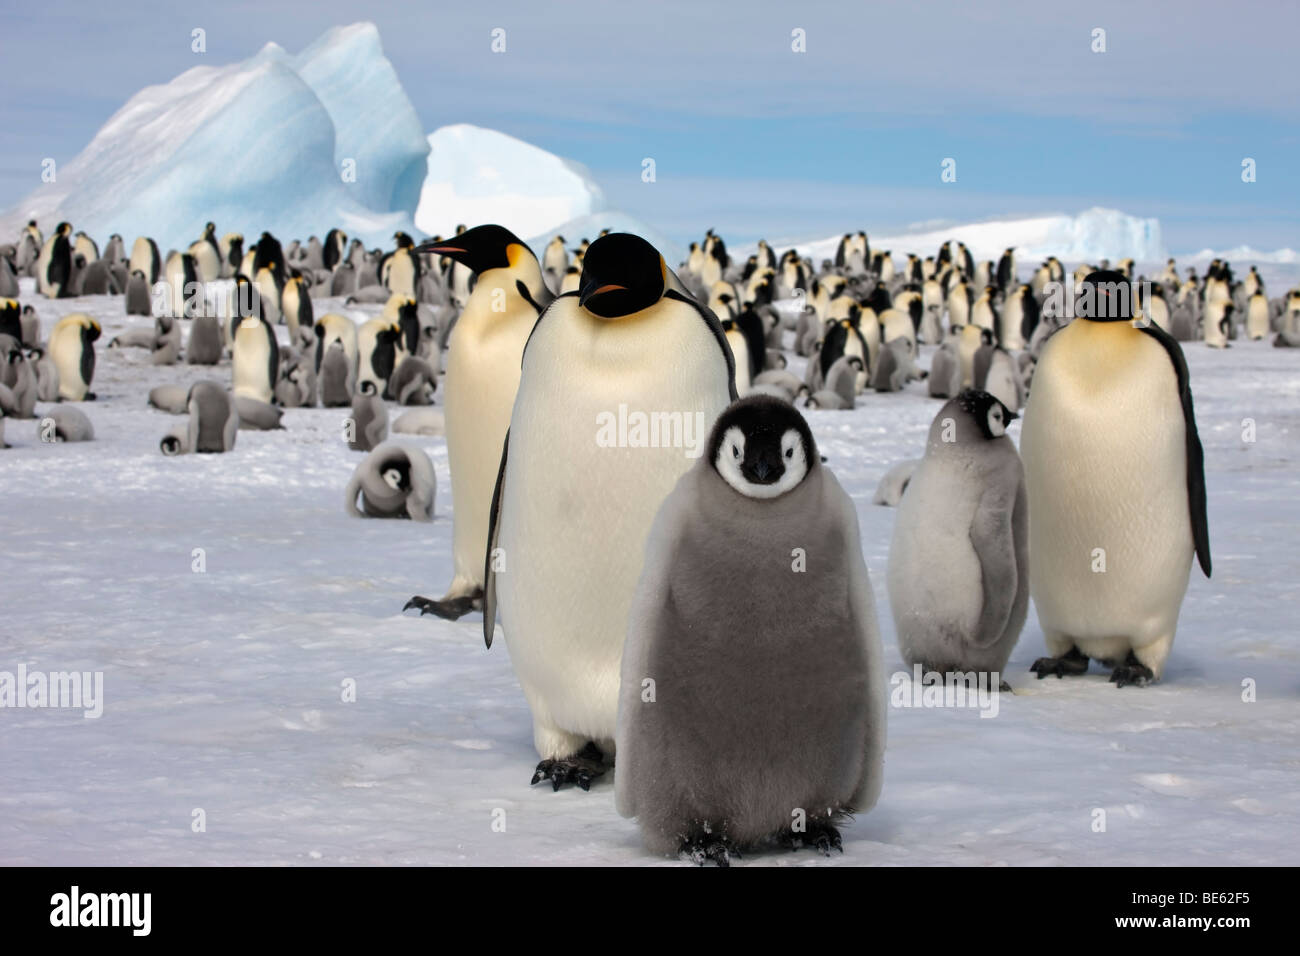 Breeding colony of Emperor Penguins at Snow Hill Island in Antarctica, fluffy adorable babies, icebergs, blue sky - Stock Image